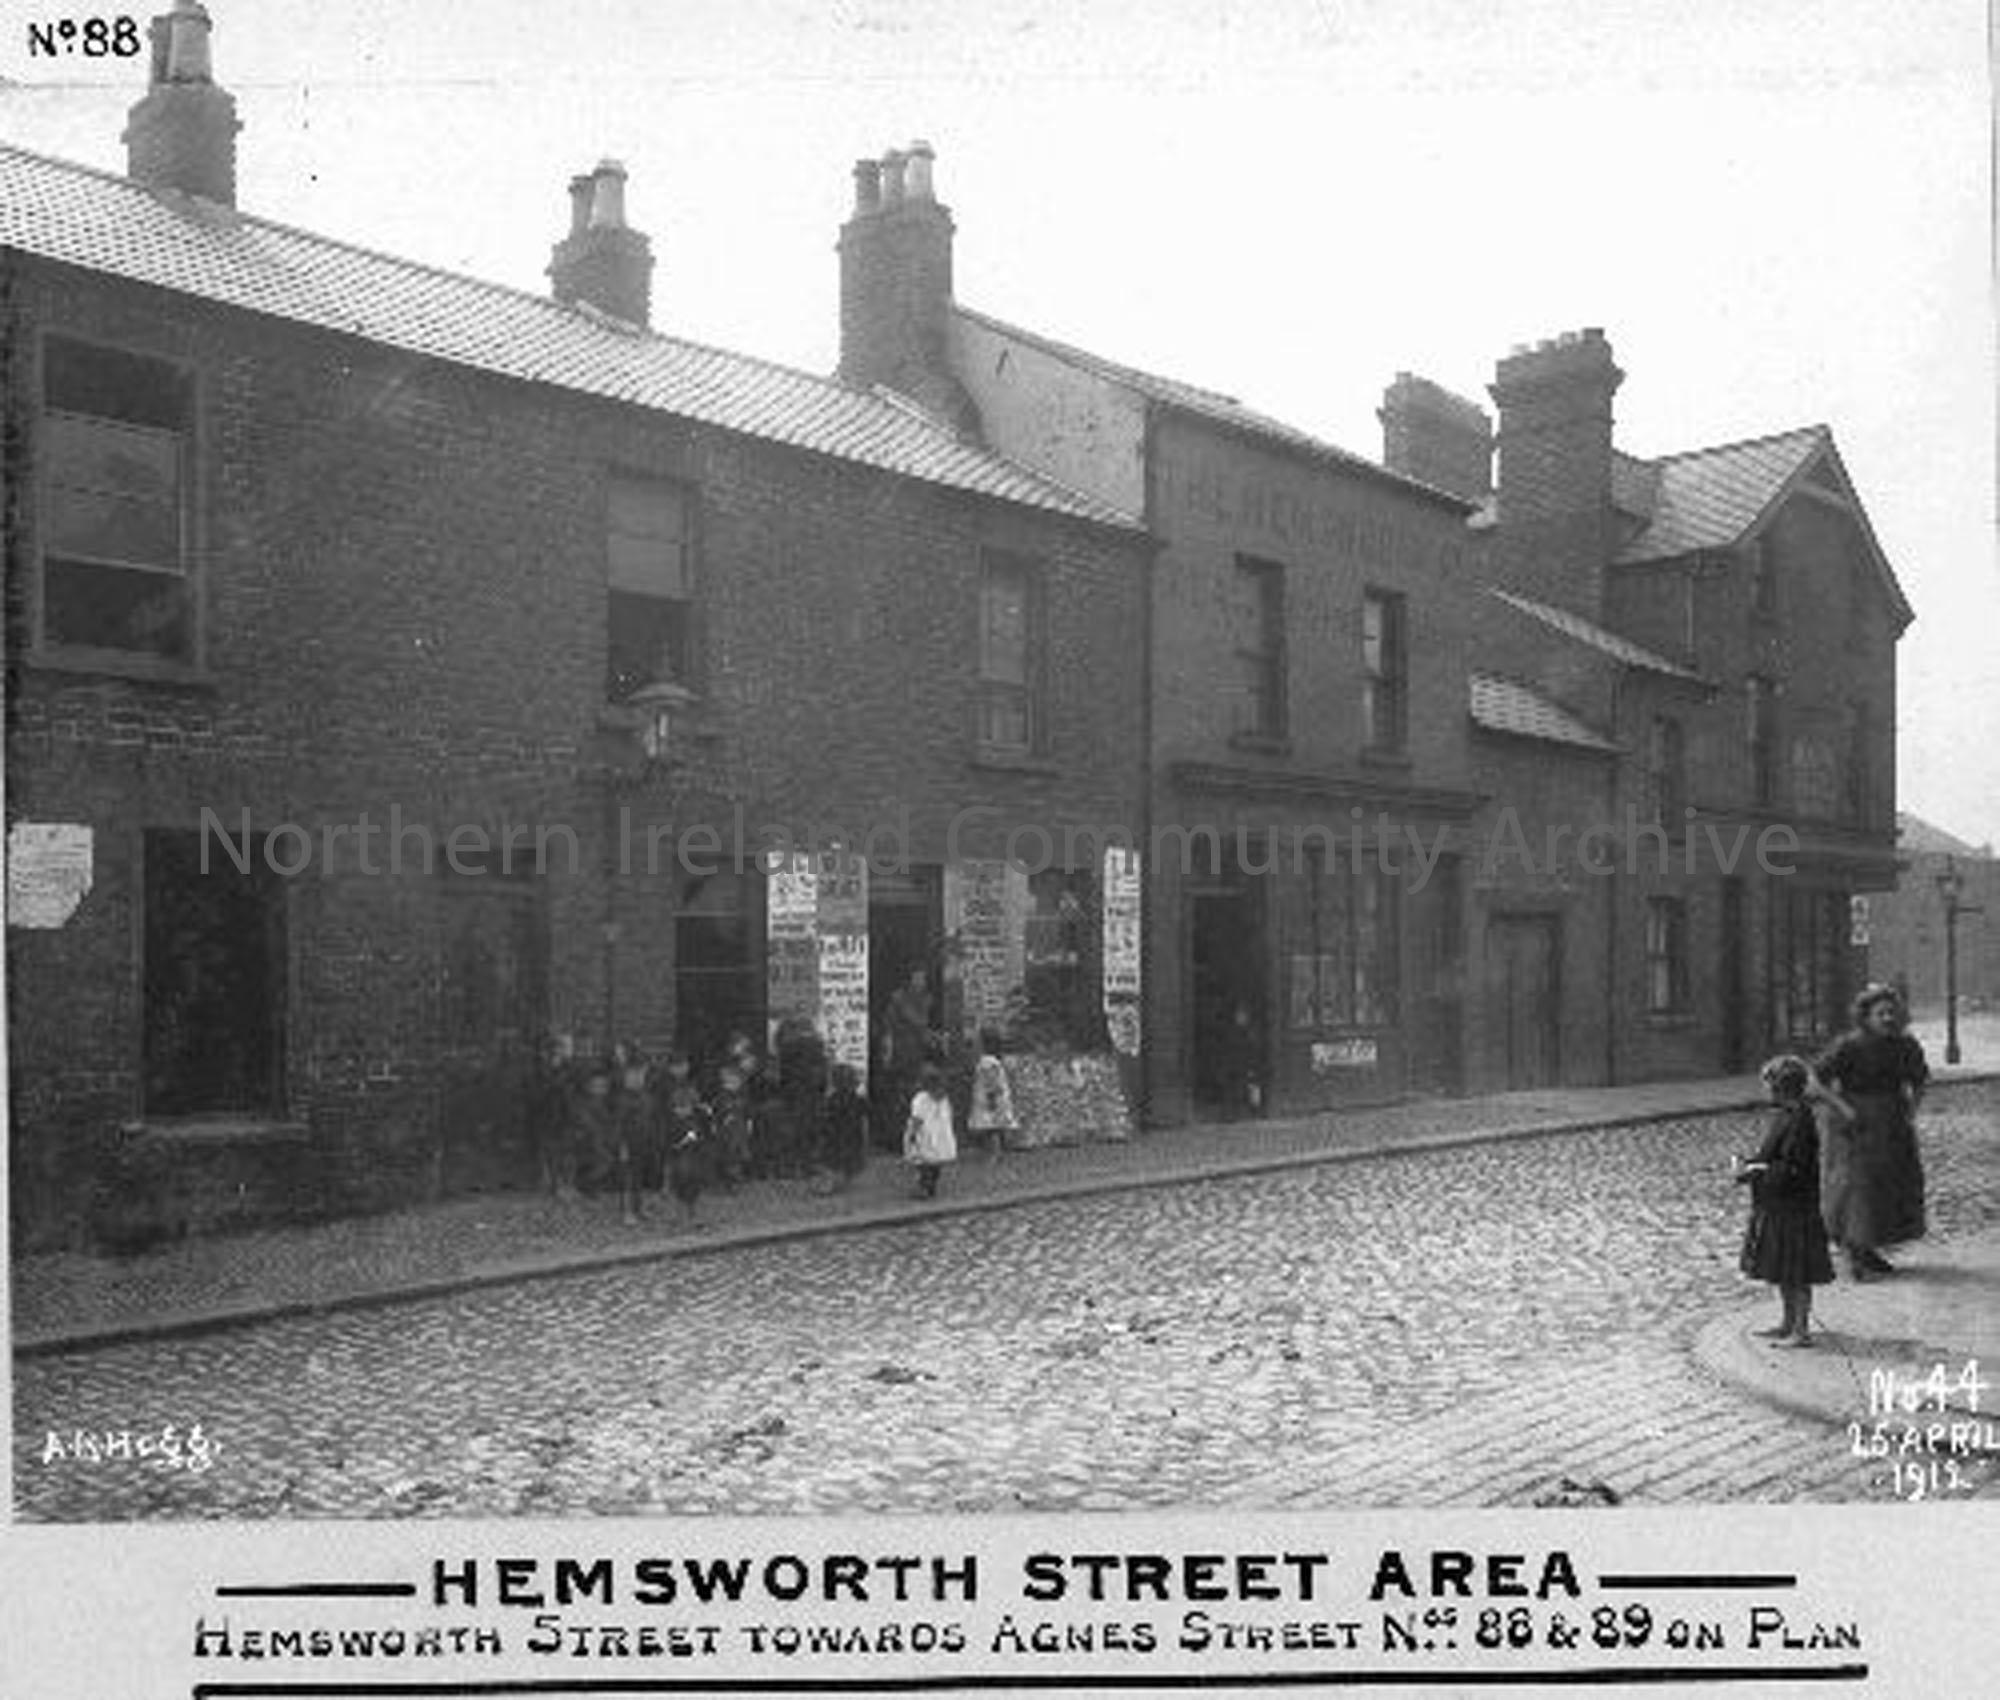 Hemsworth Street Area – Towards Agnes Street (1661)